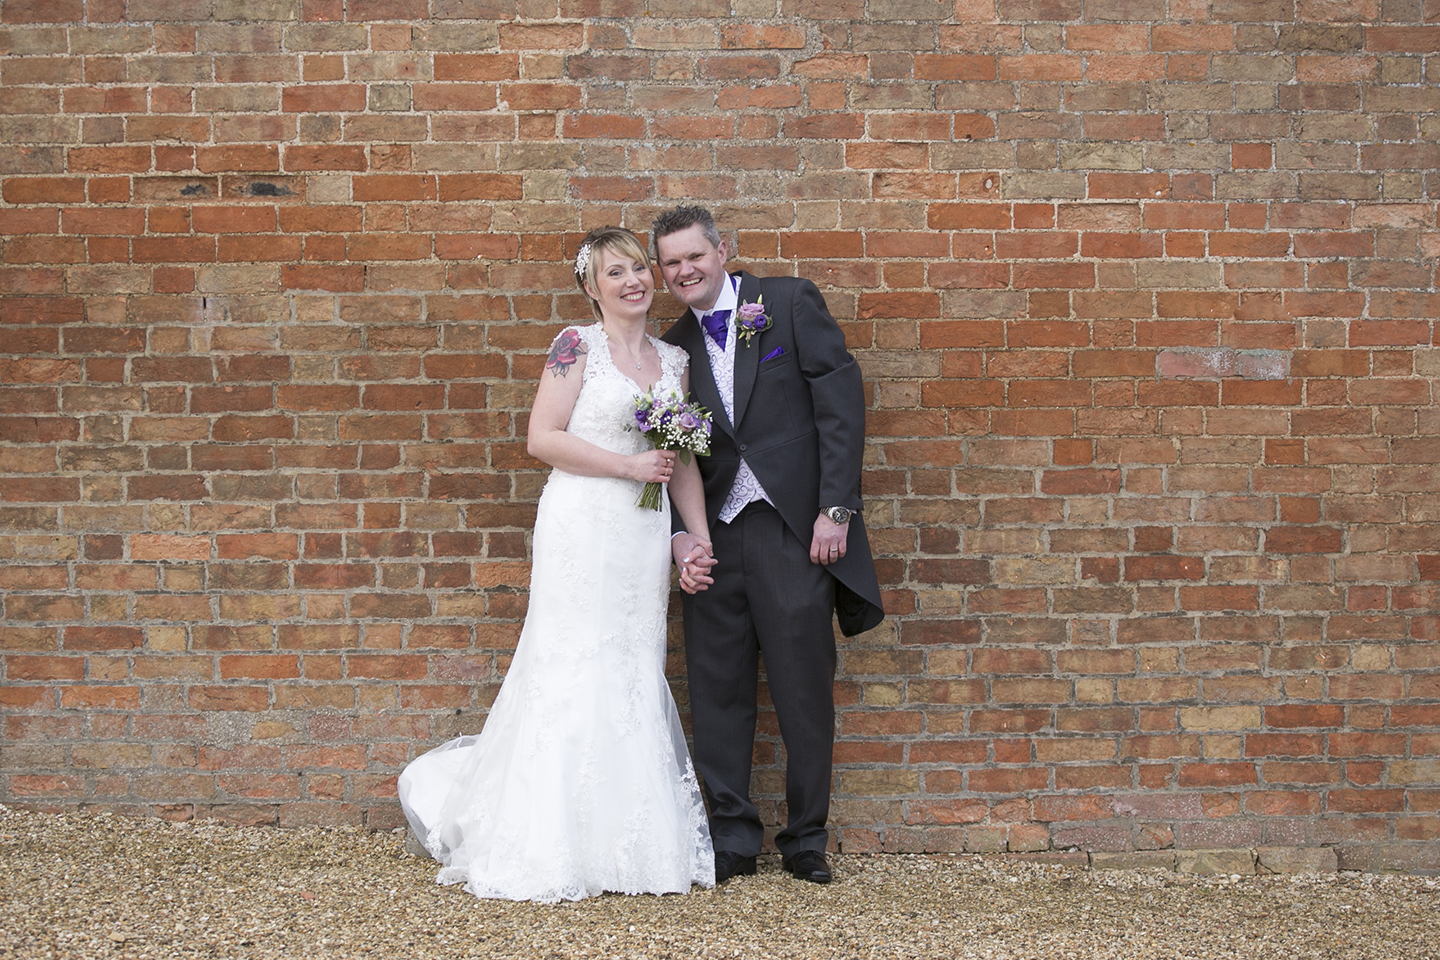 The bride and groom take a moment away from guests on their wedding day at Bassmead Manor Barns